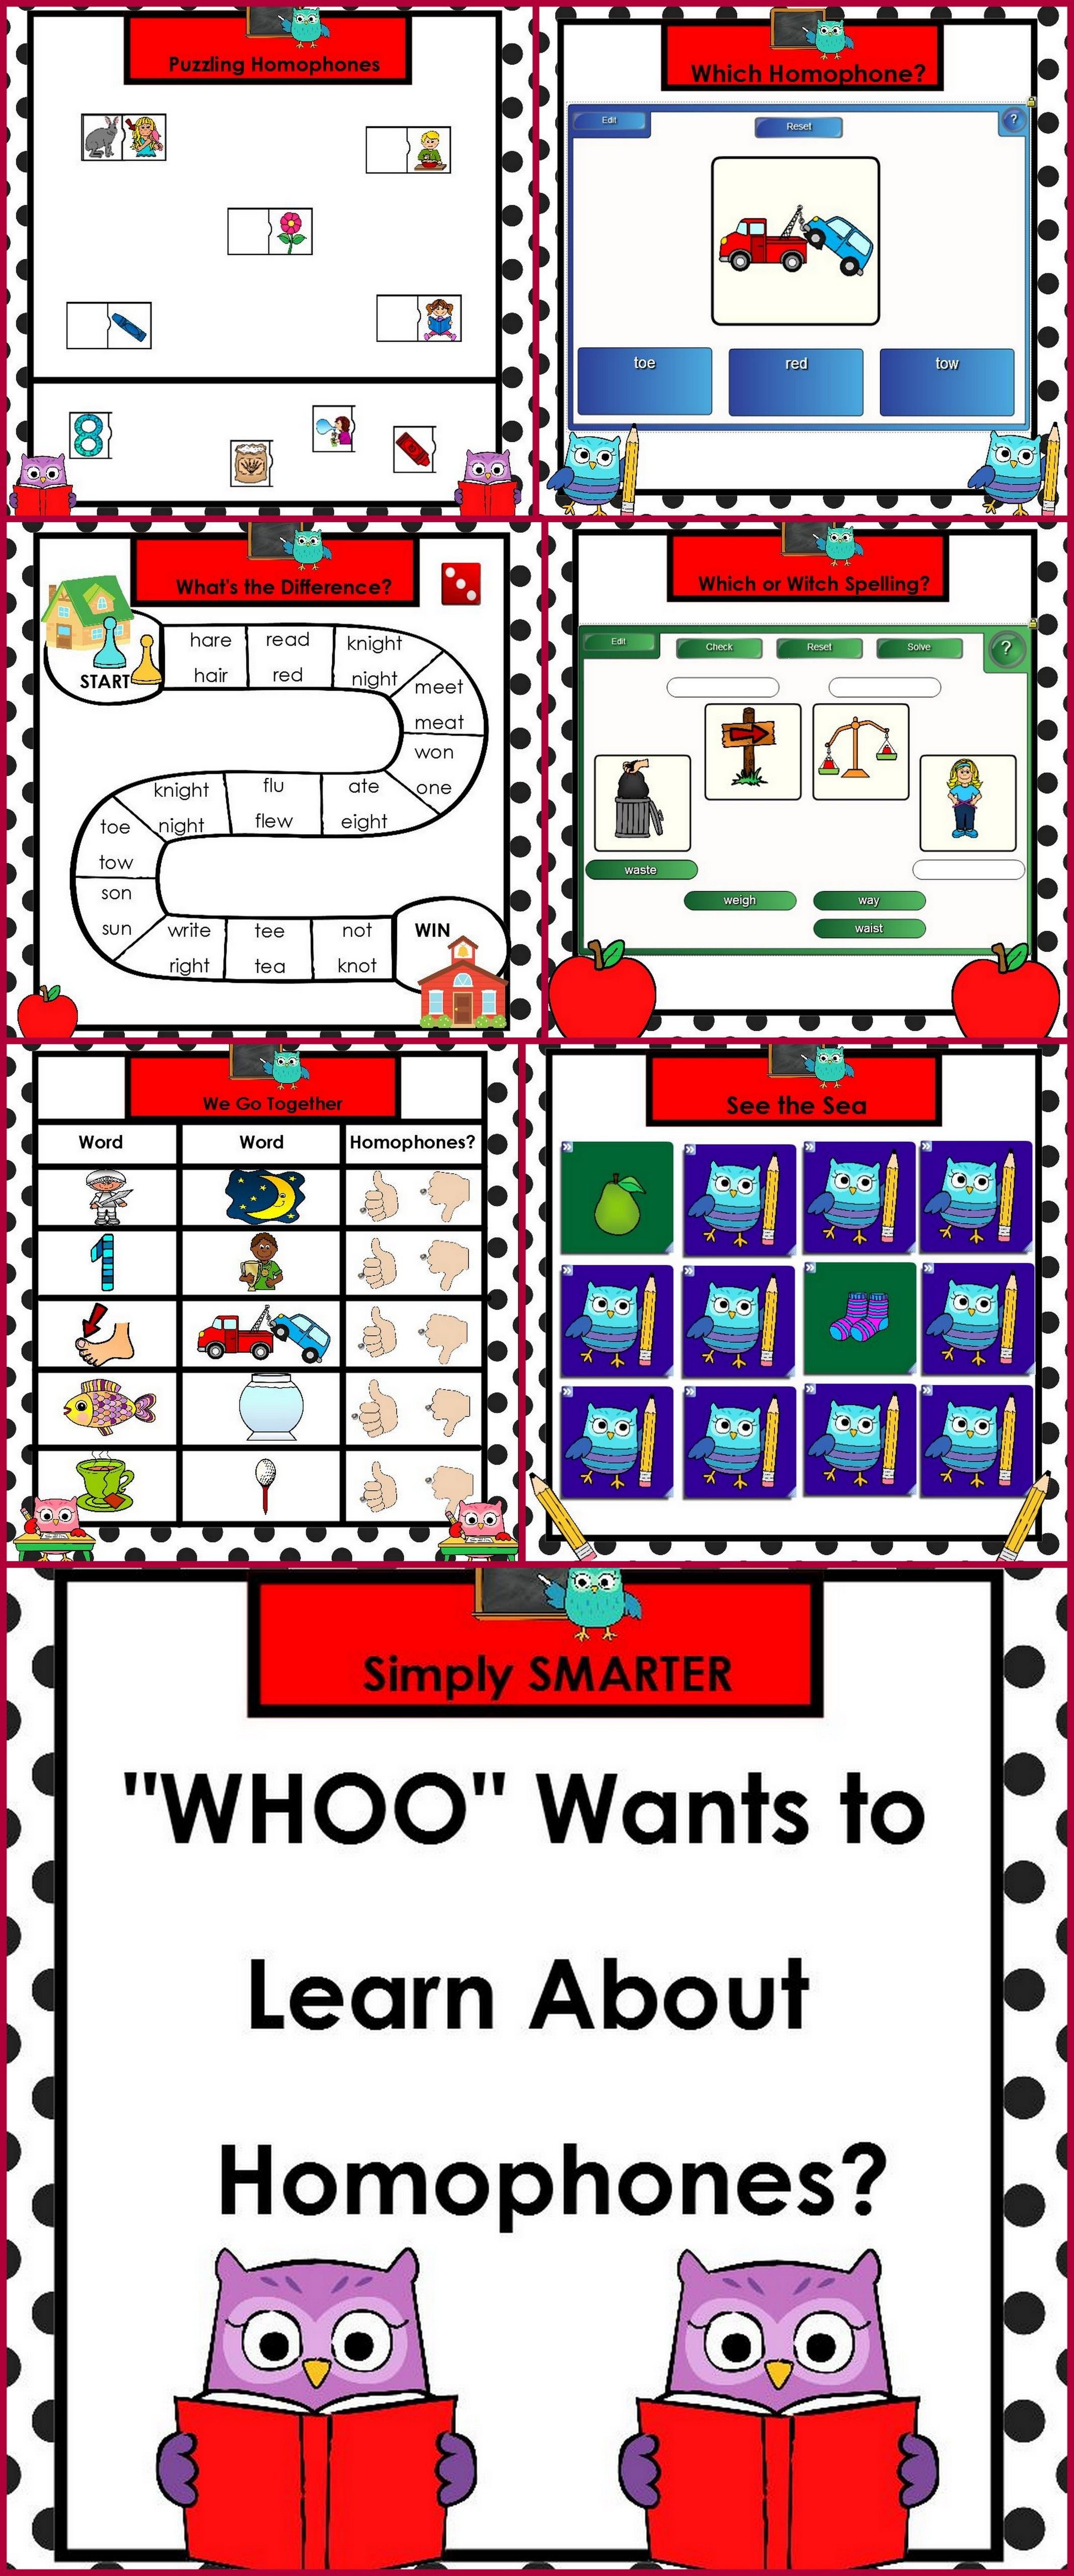 Whoo Wants To Learn About Homophones Smartboard